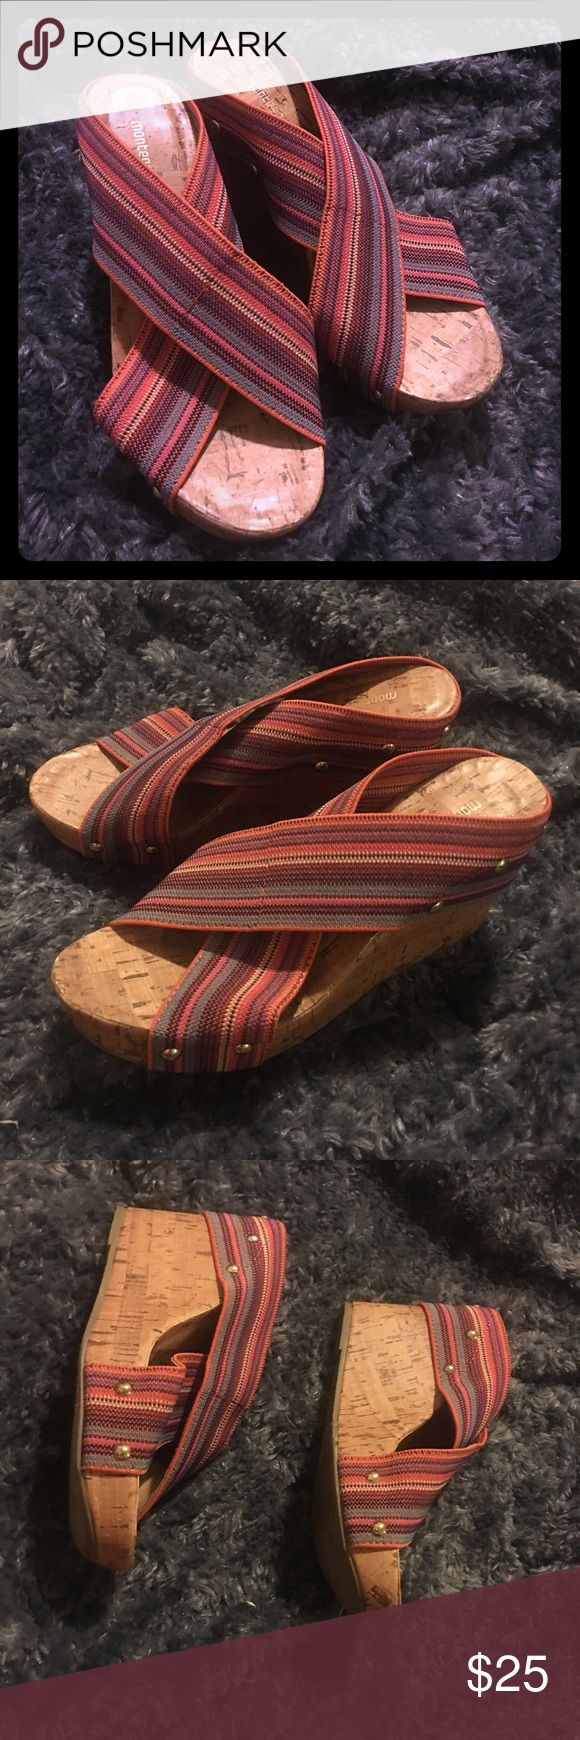 Montego bay club multicolor wedges size 7 Cute montego wedges very comfortable size 7 montego bay club Shoes Wedges